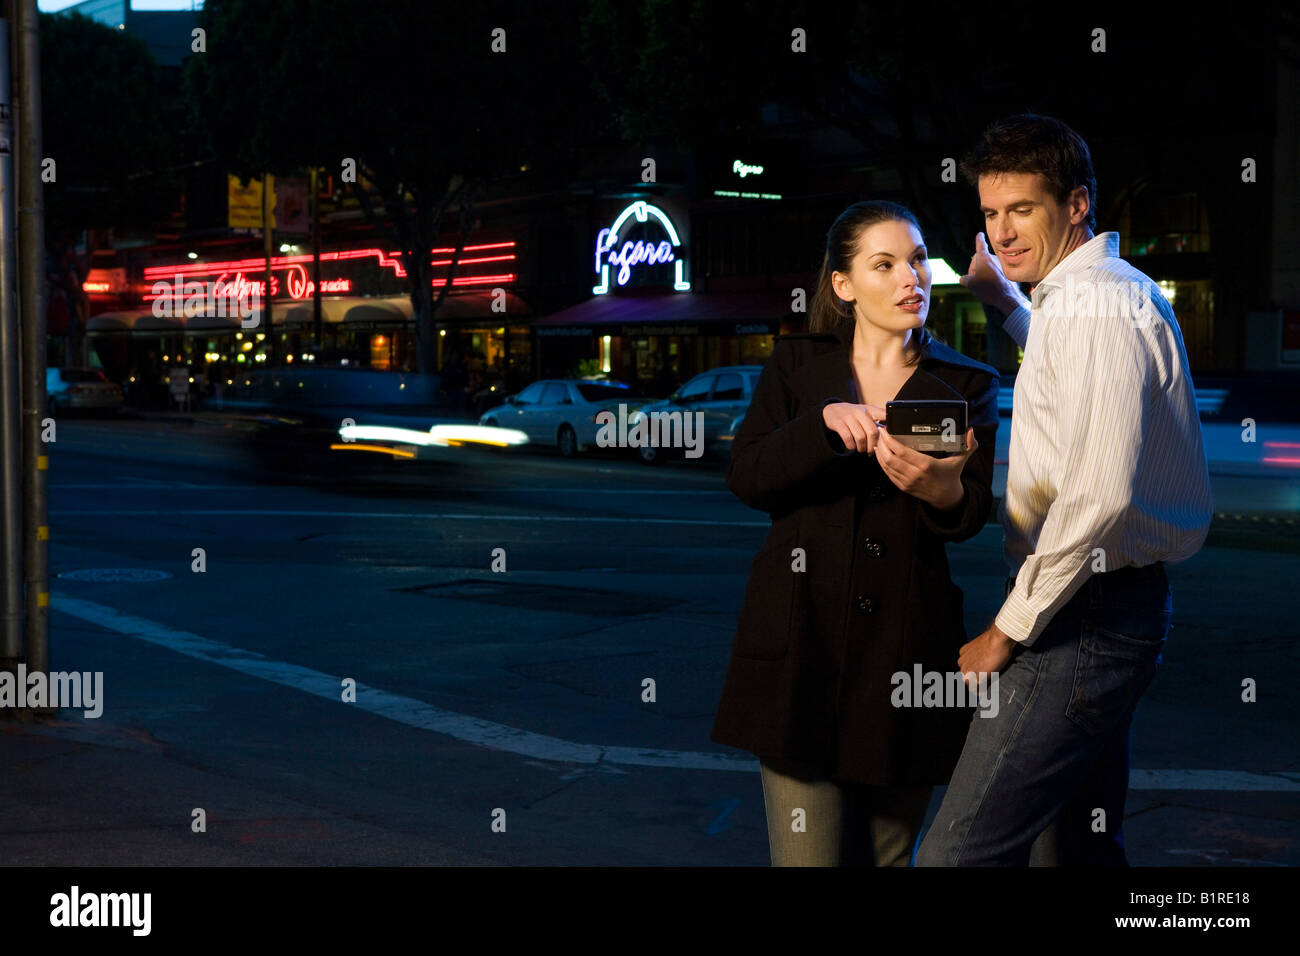 A young couple are strolling through a downtown city area at night carrying a hand held device. - Stock Image